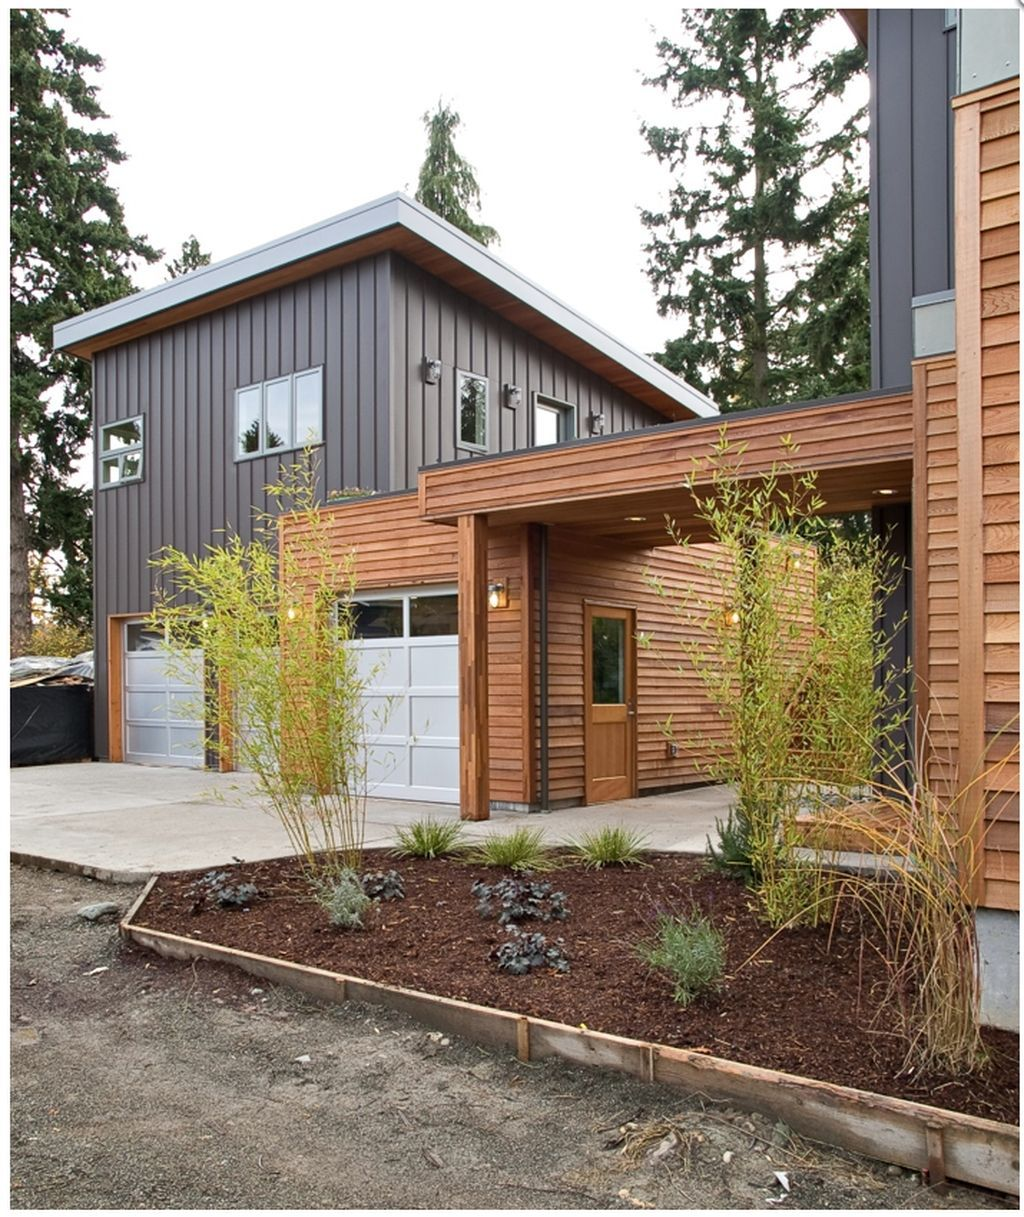 Awesome 20 Cute Home Garage Design Ideas For Your Minimalist Home Garage Design Garage House Modern Garage